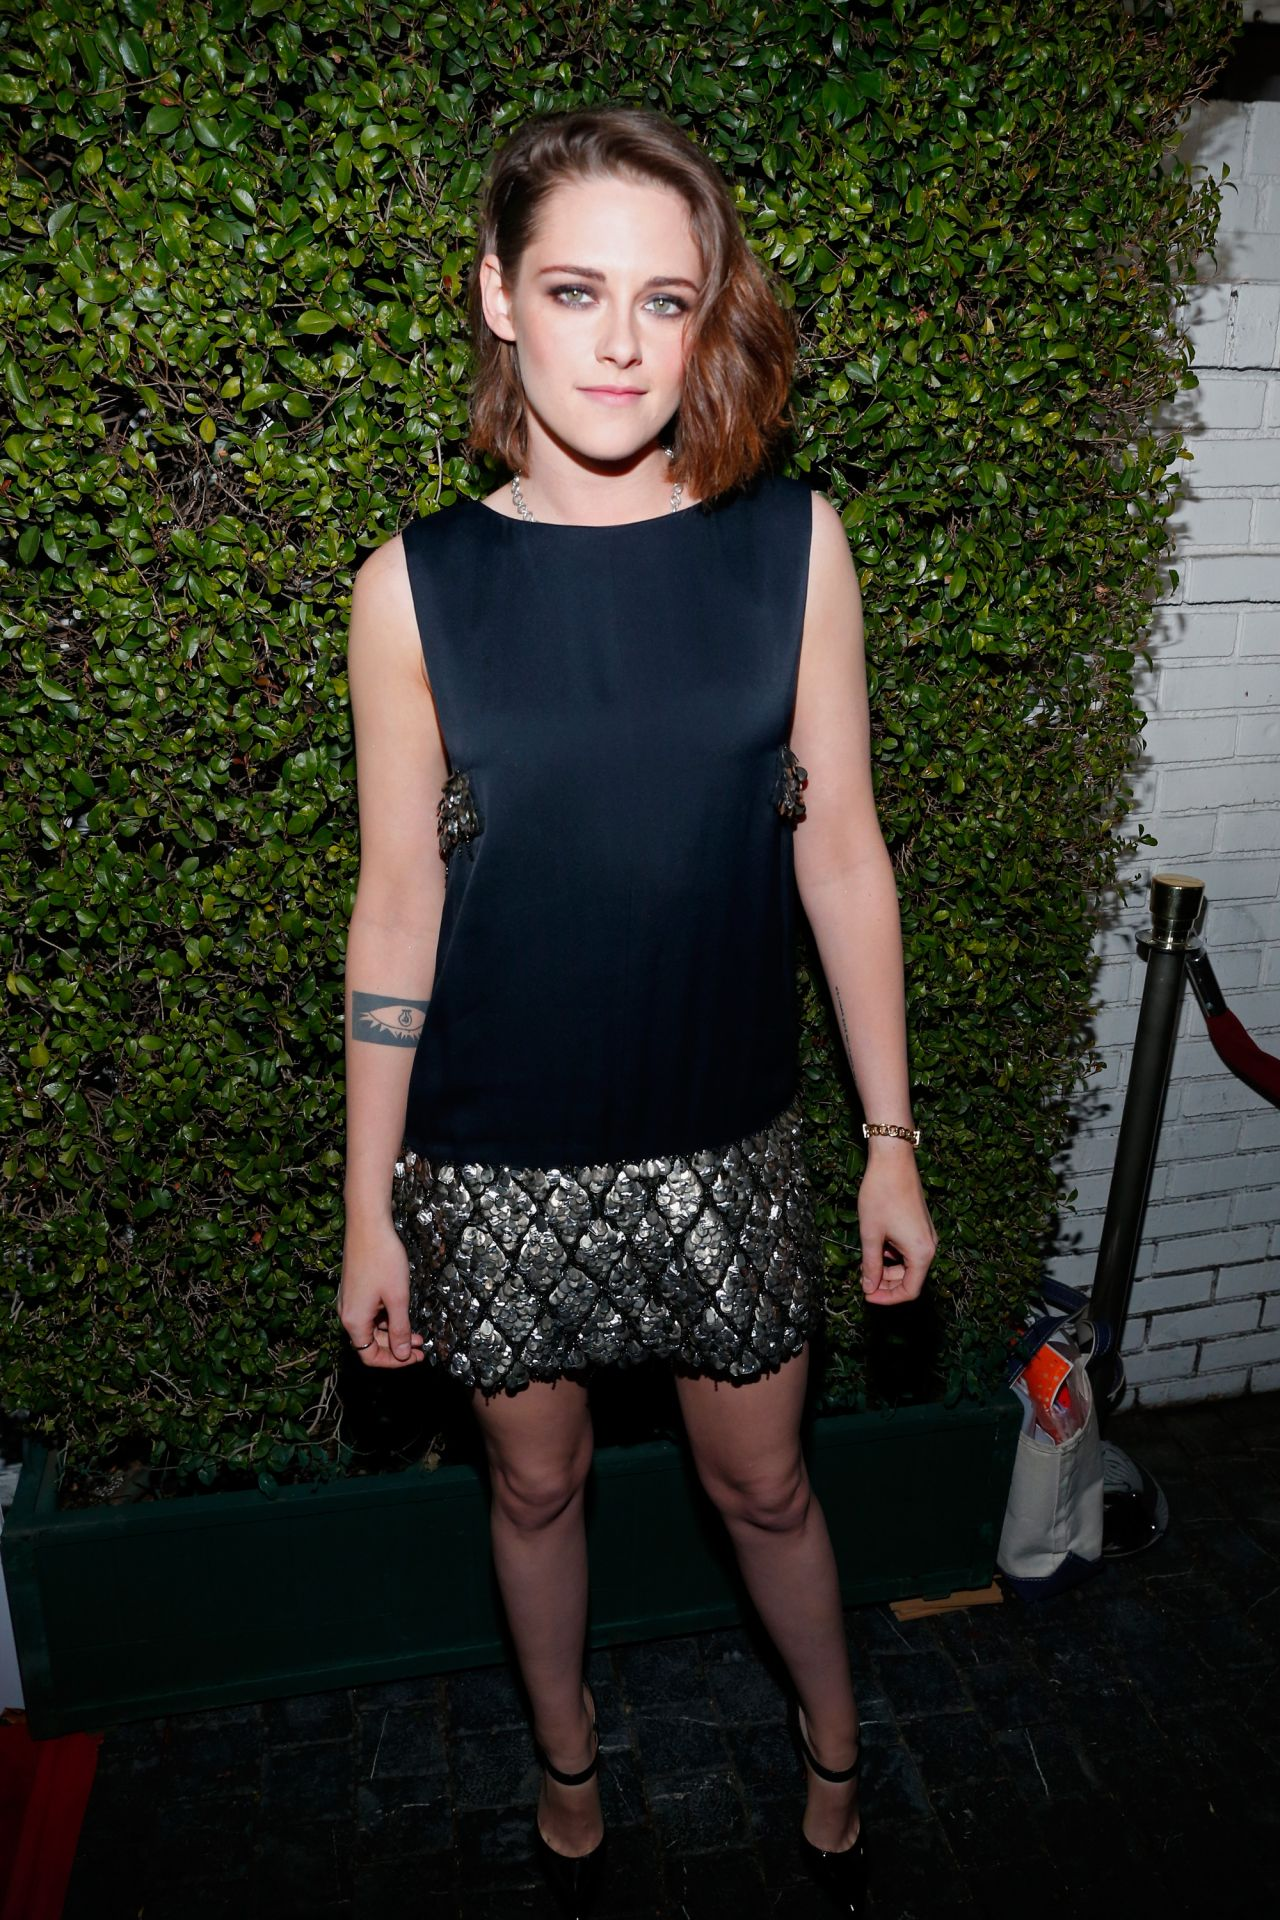 kristen-stewart-inaugural-image-maker-awards-hosted-by-marie-claire-in-los-angeles-1-12-2016-3